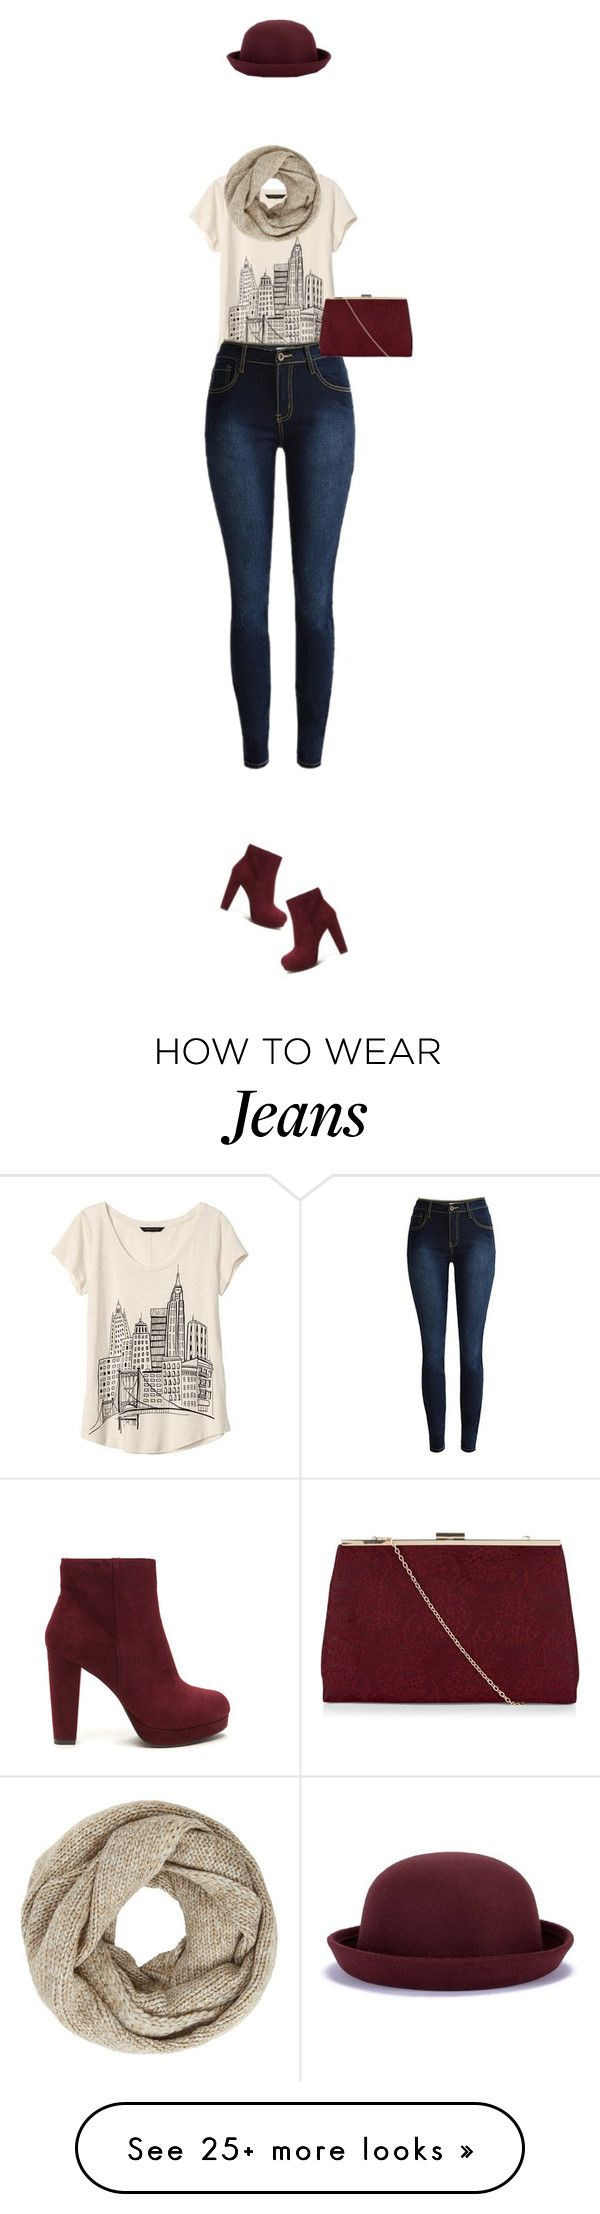 """""""Boots and Jeans"""" by artamisia on Polyvore featuring Banana Republic, John Lewis, New Look, Boots and jeans"""